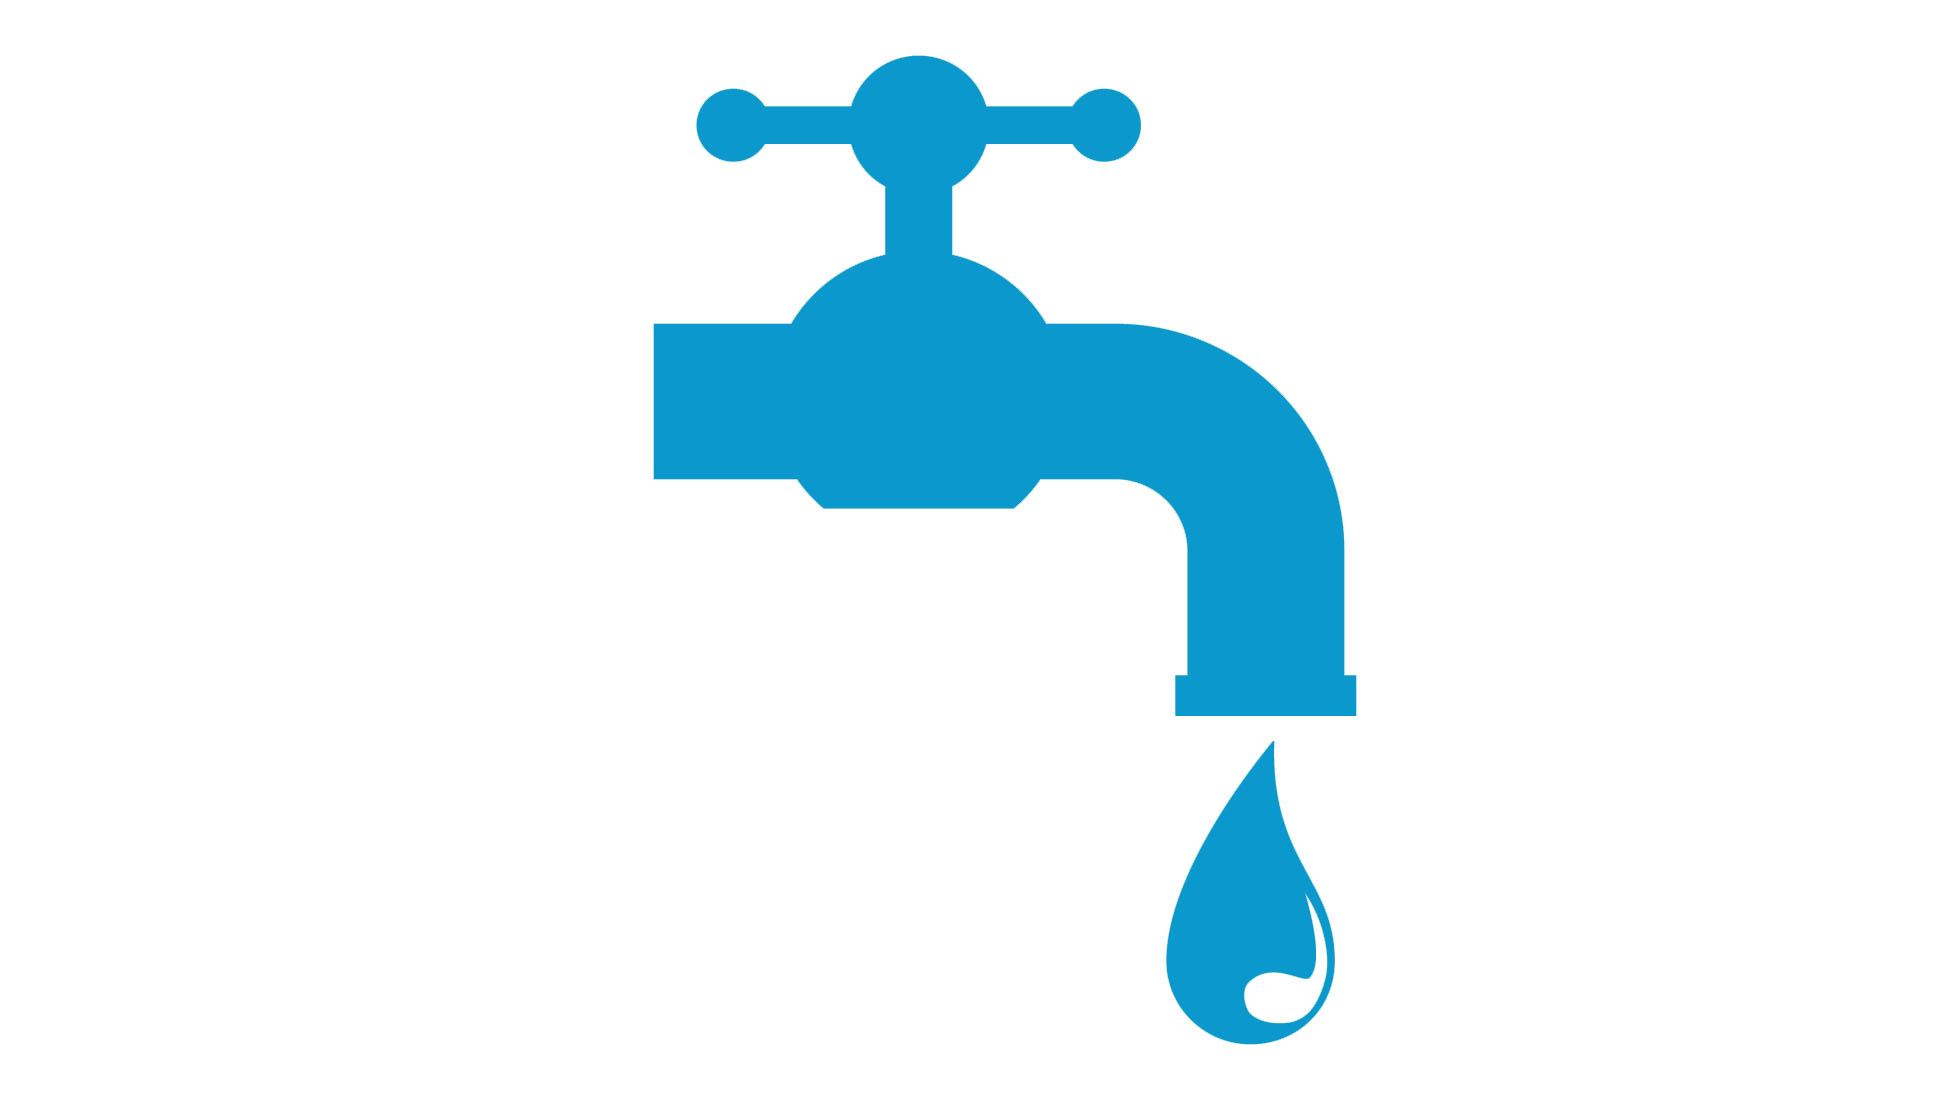 Drinking Water Faucet >> Do You Have Safe Drinking Water? | Pure LivingPure Living